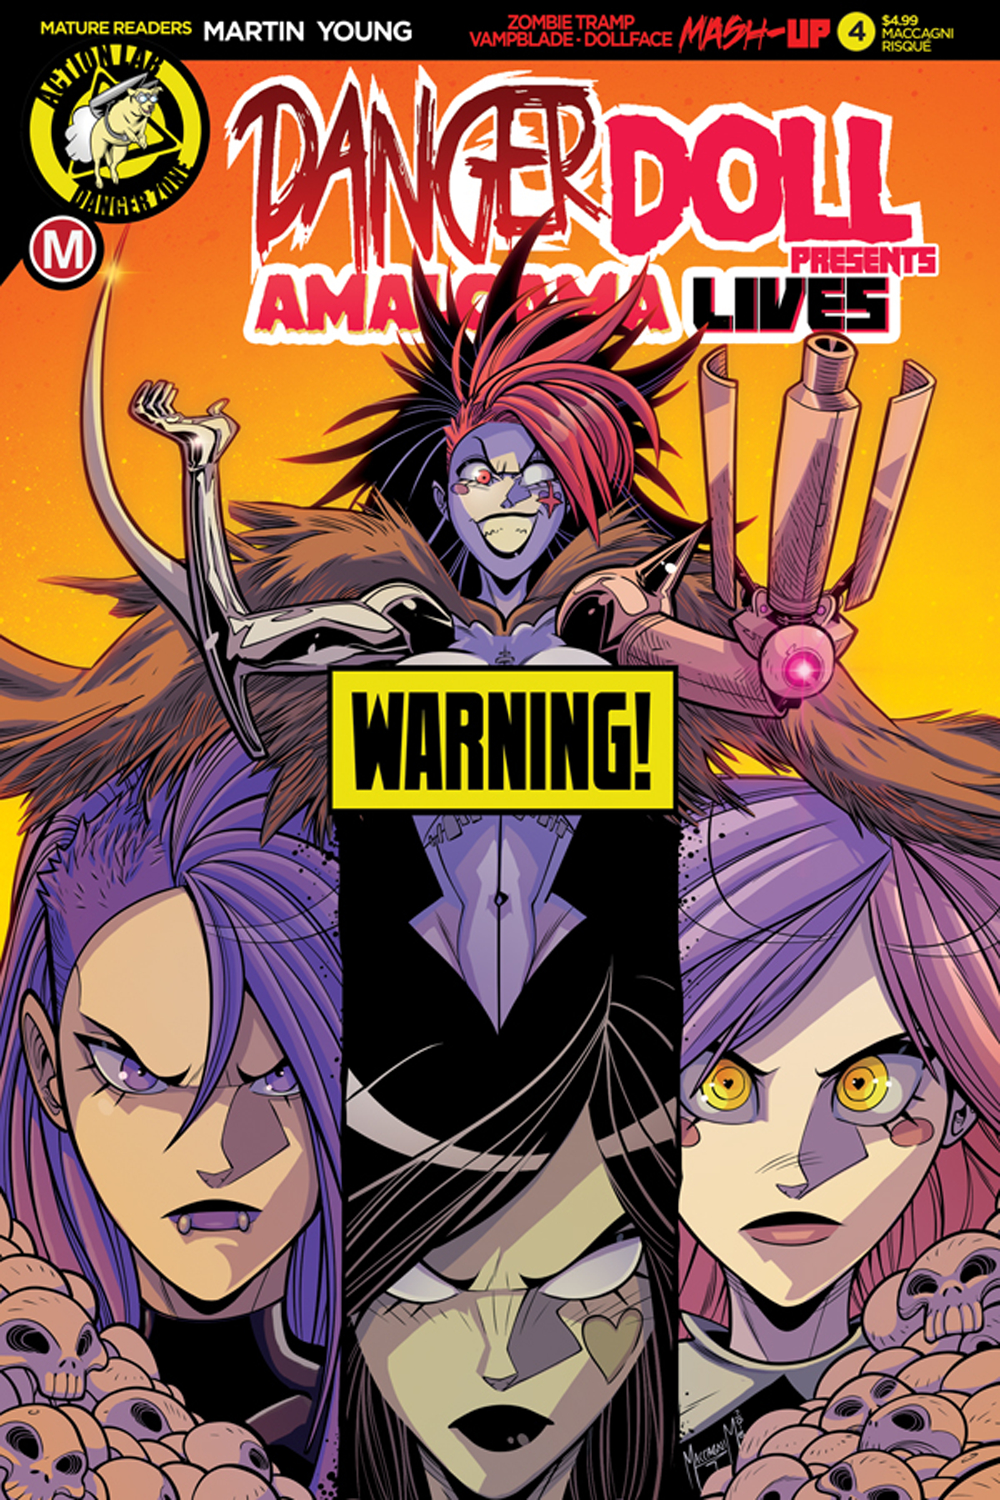 DANGER DOLL SQUAD PRESENTS AMALGAMA LIVES #4 CVR D MACCAGNI